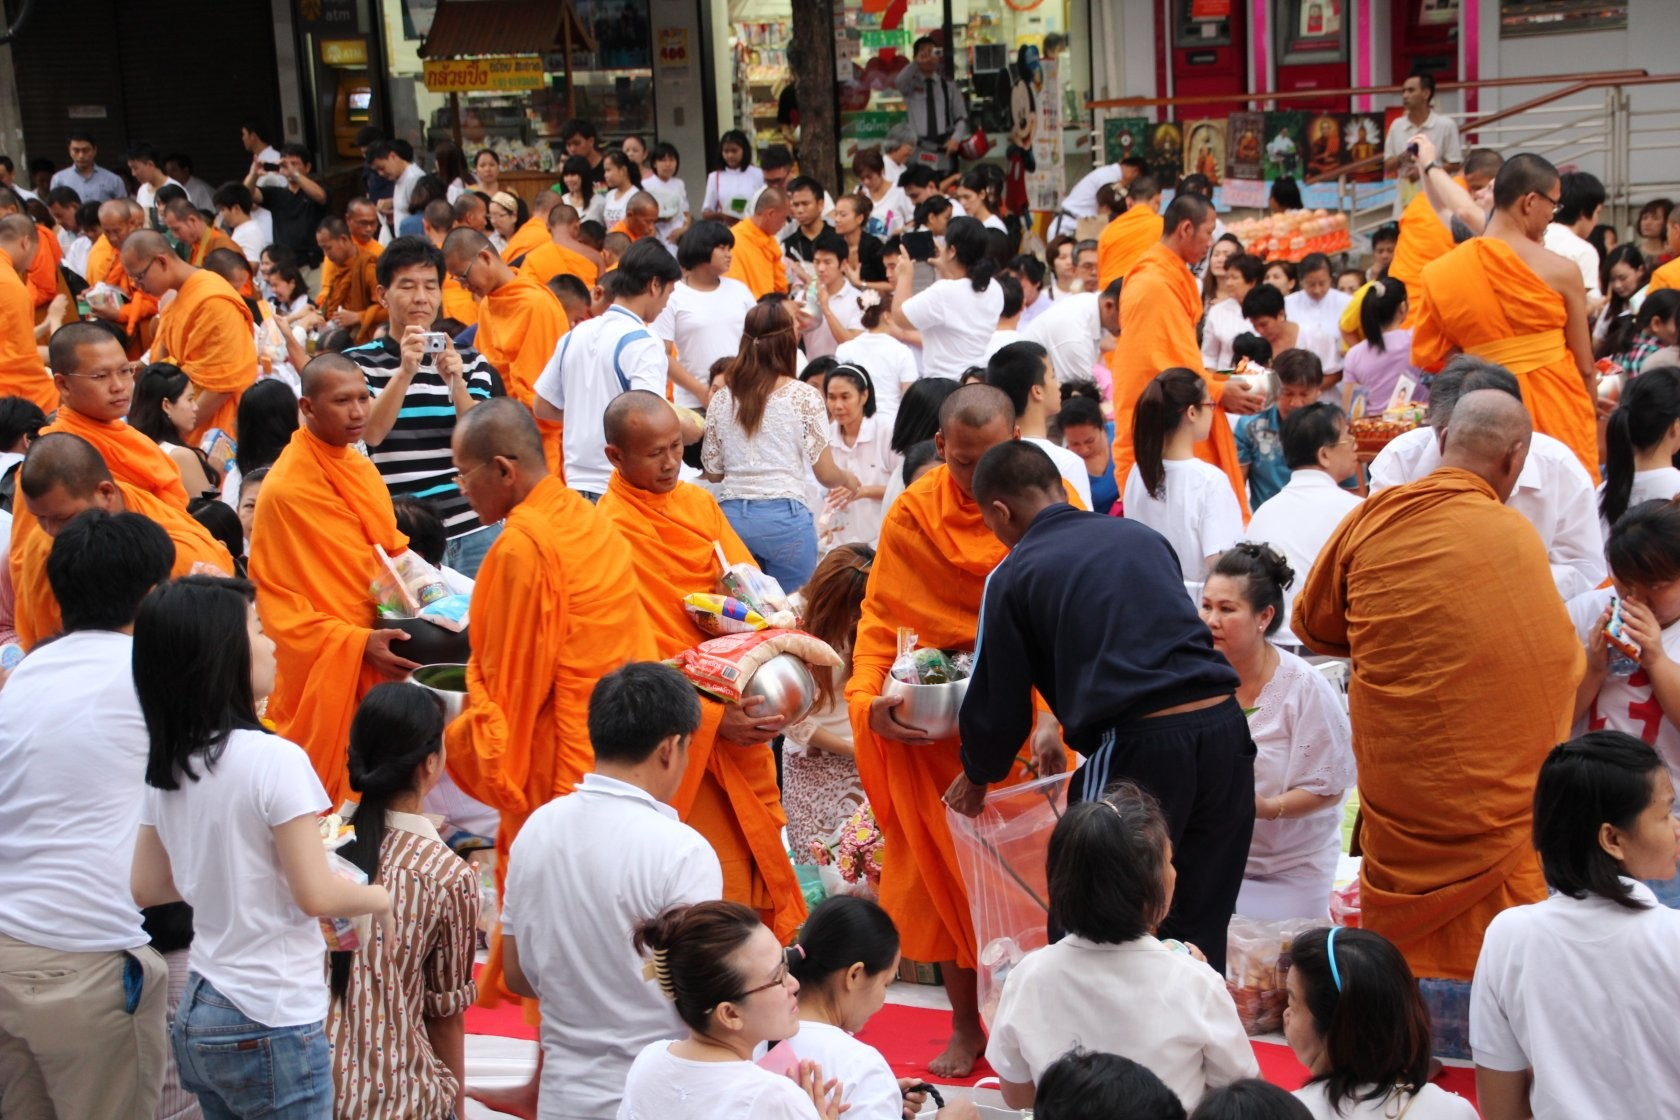 Bangkok - Mass Alms Giving in Thonglor / Sukhumvit Soi 55 XXII